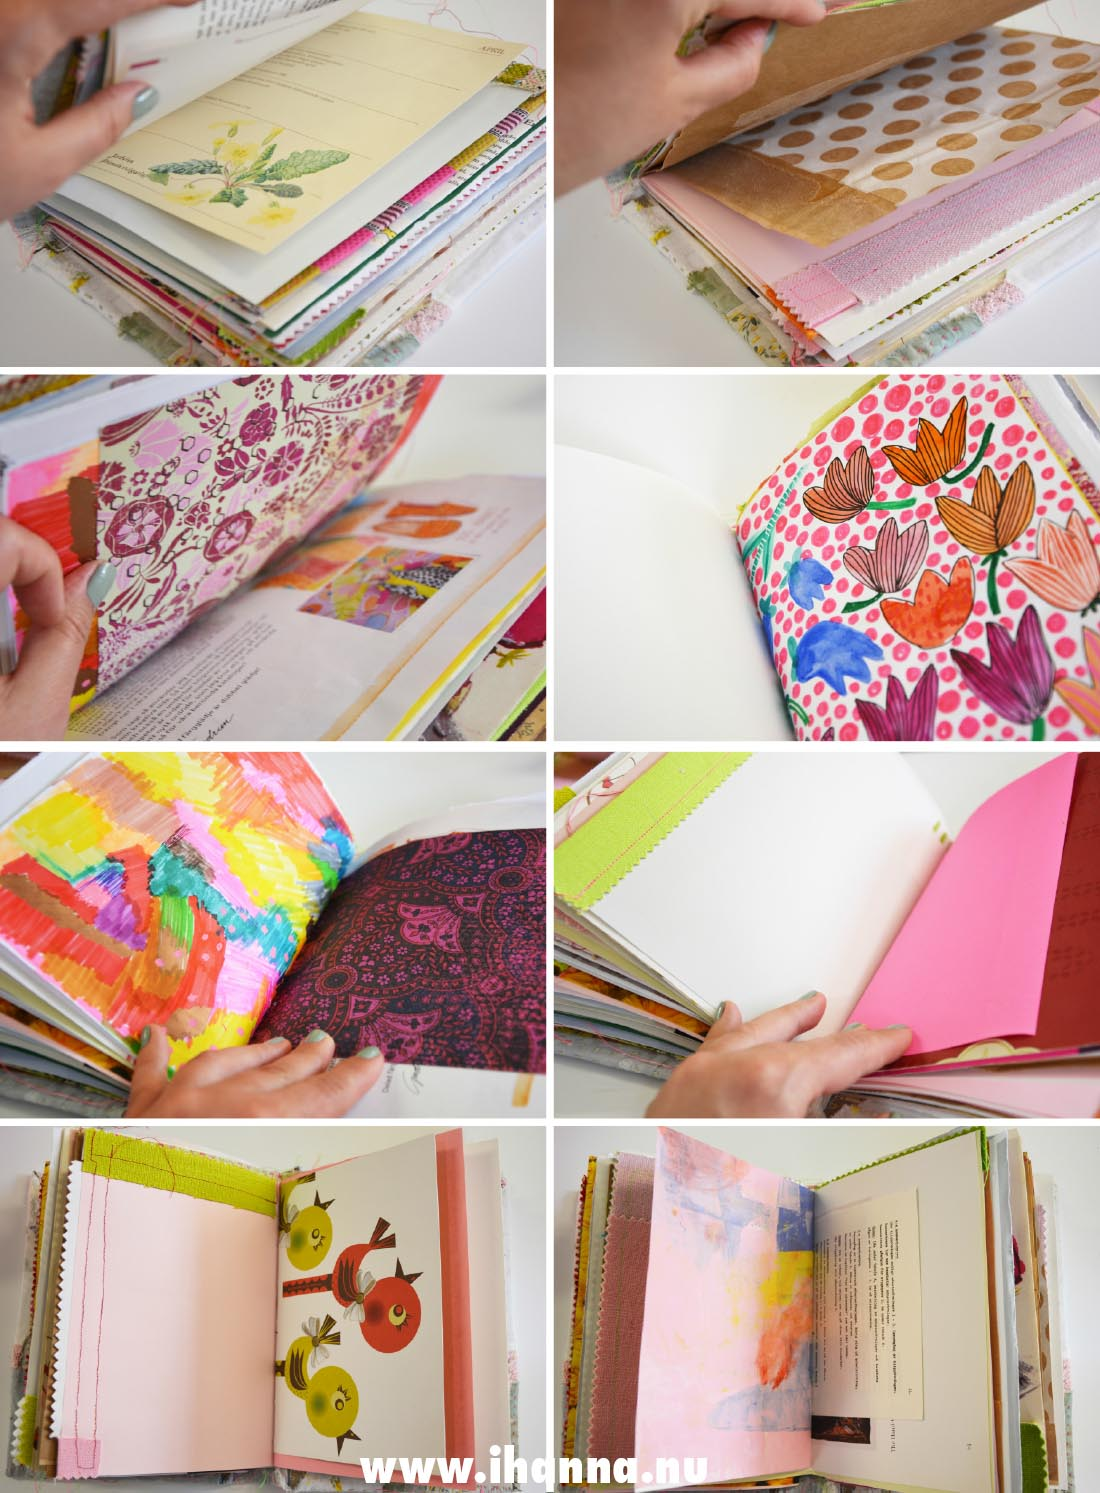 Pages in the Summer Junk Journal that I made for myself | Studio iHanna